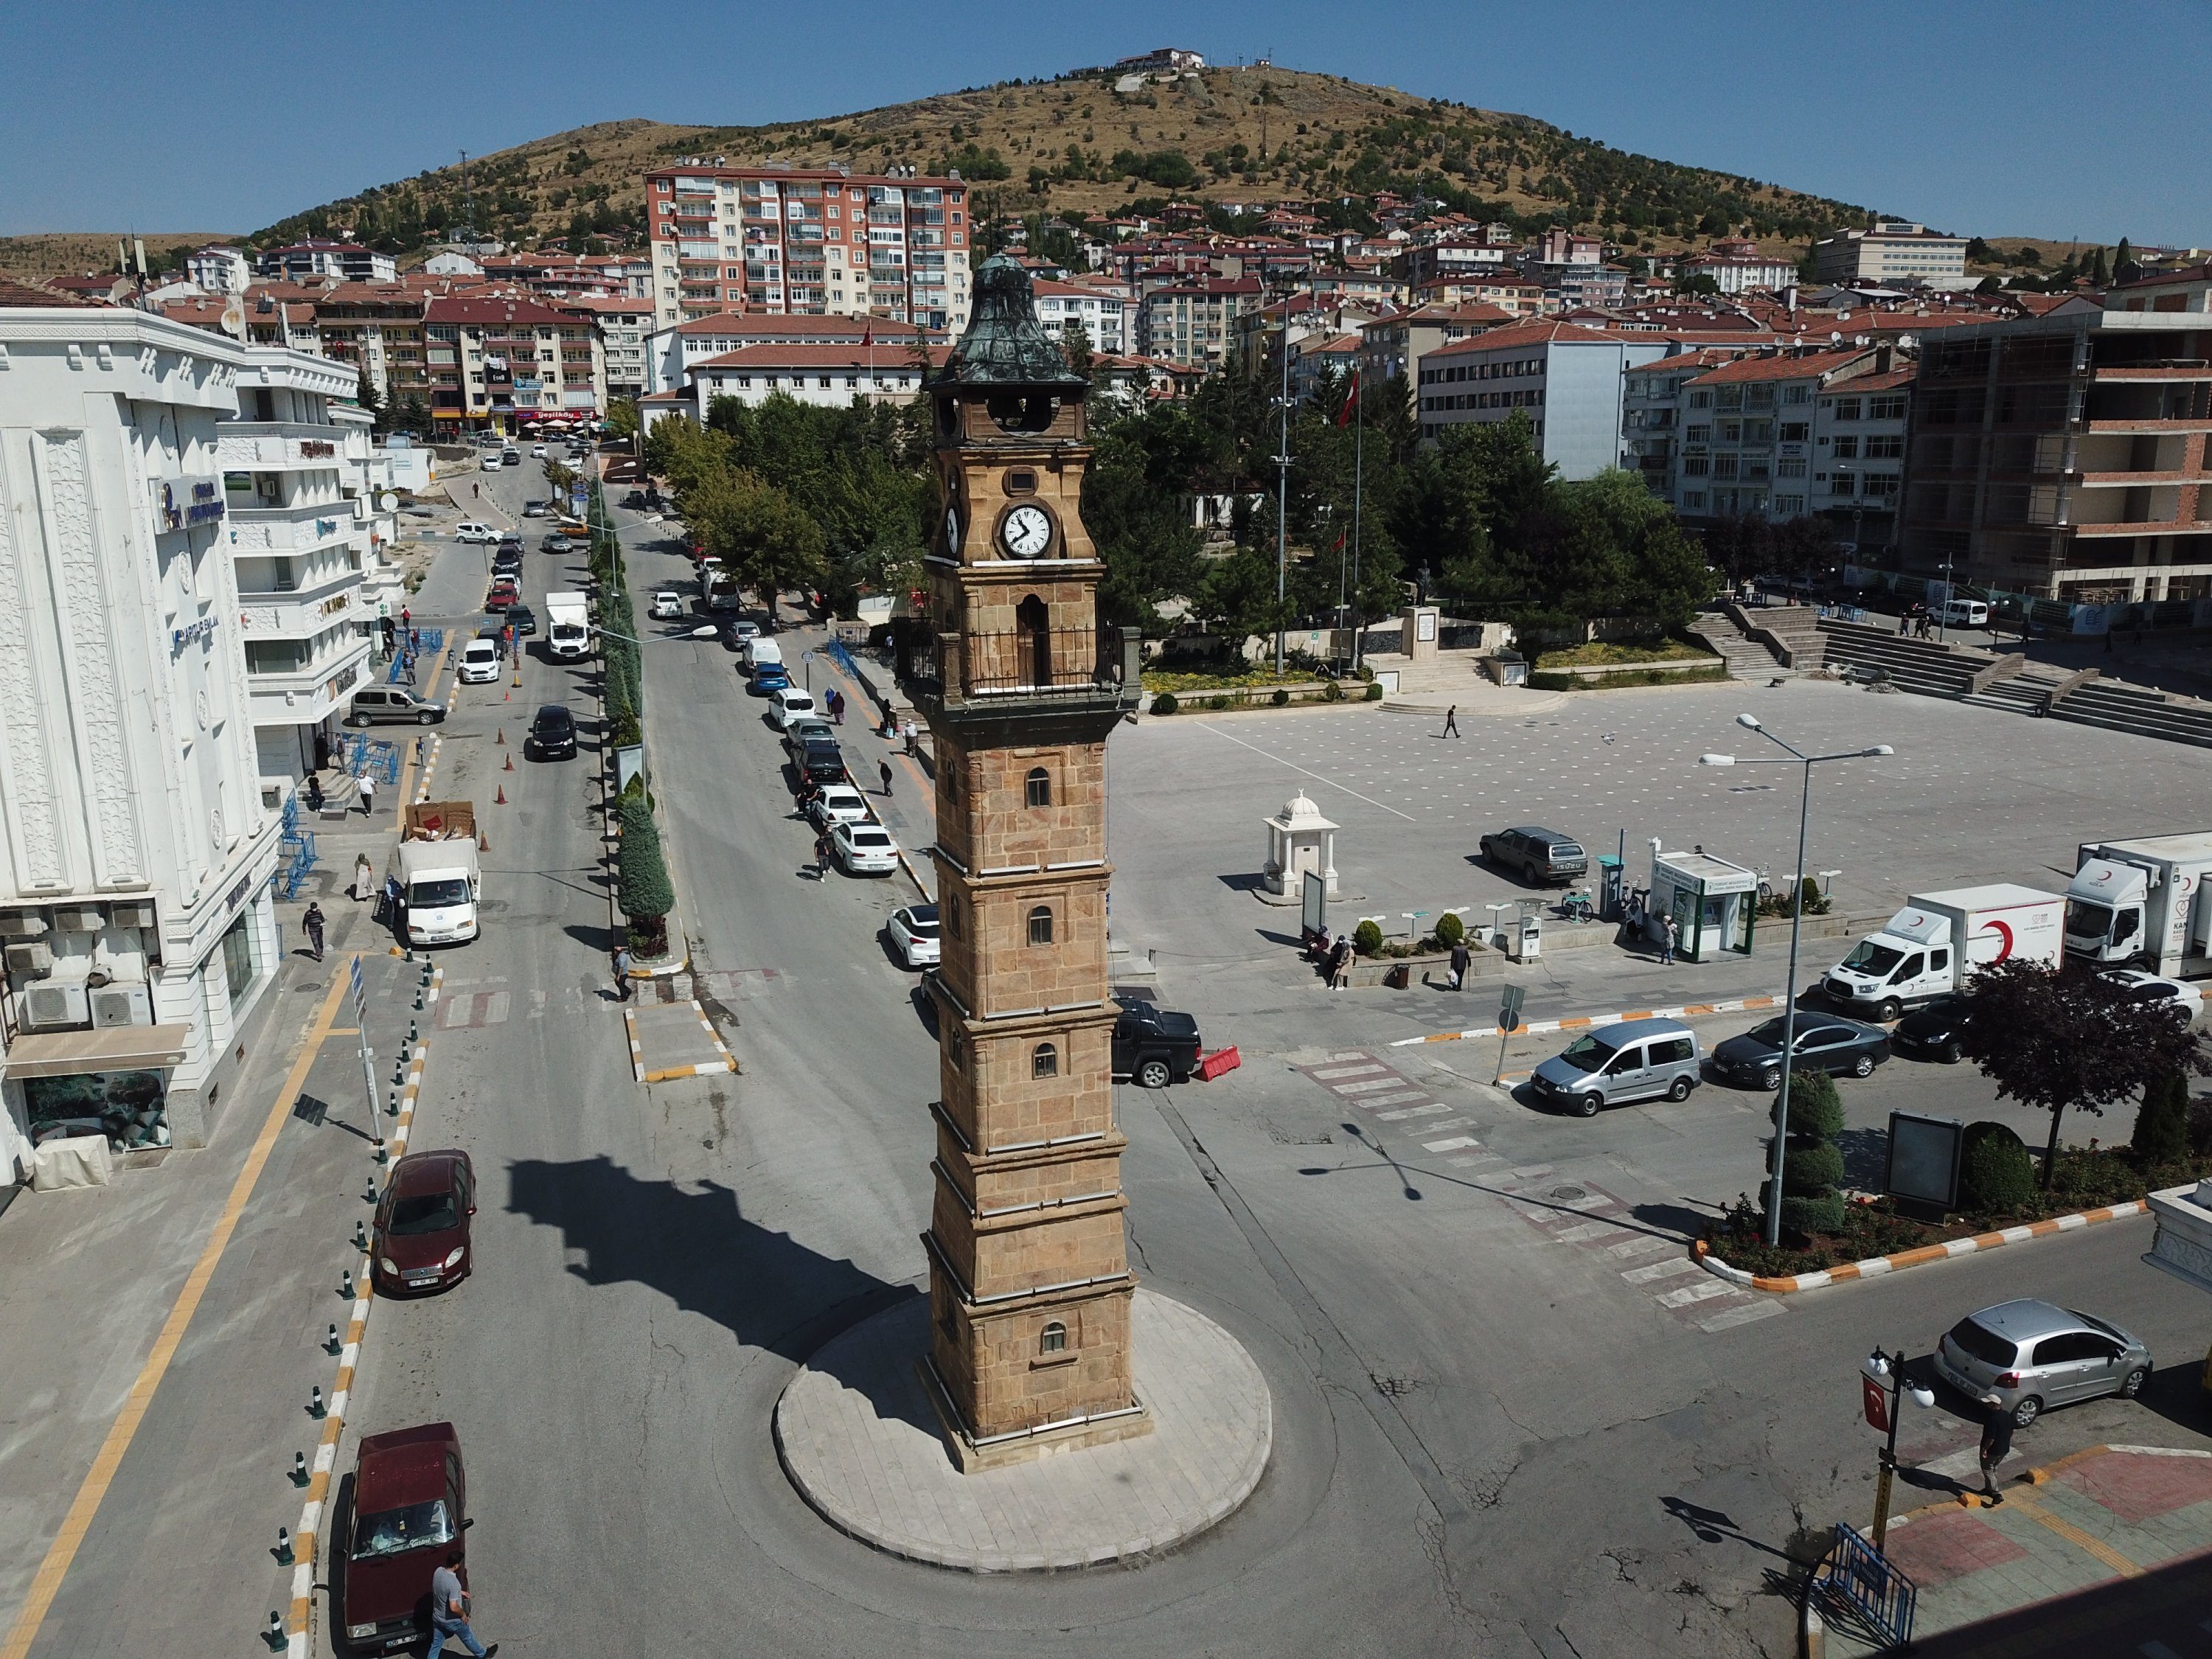 The clock tower in central Yozgat province has seven floors, Turkey, Aug. 24, 2020. (AA Photo)